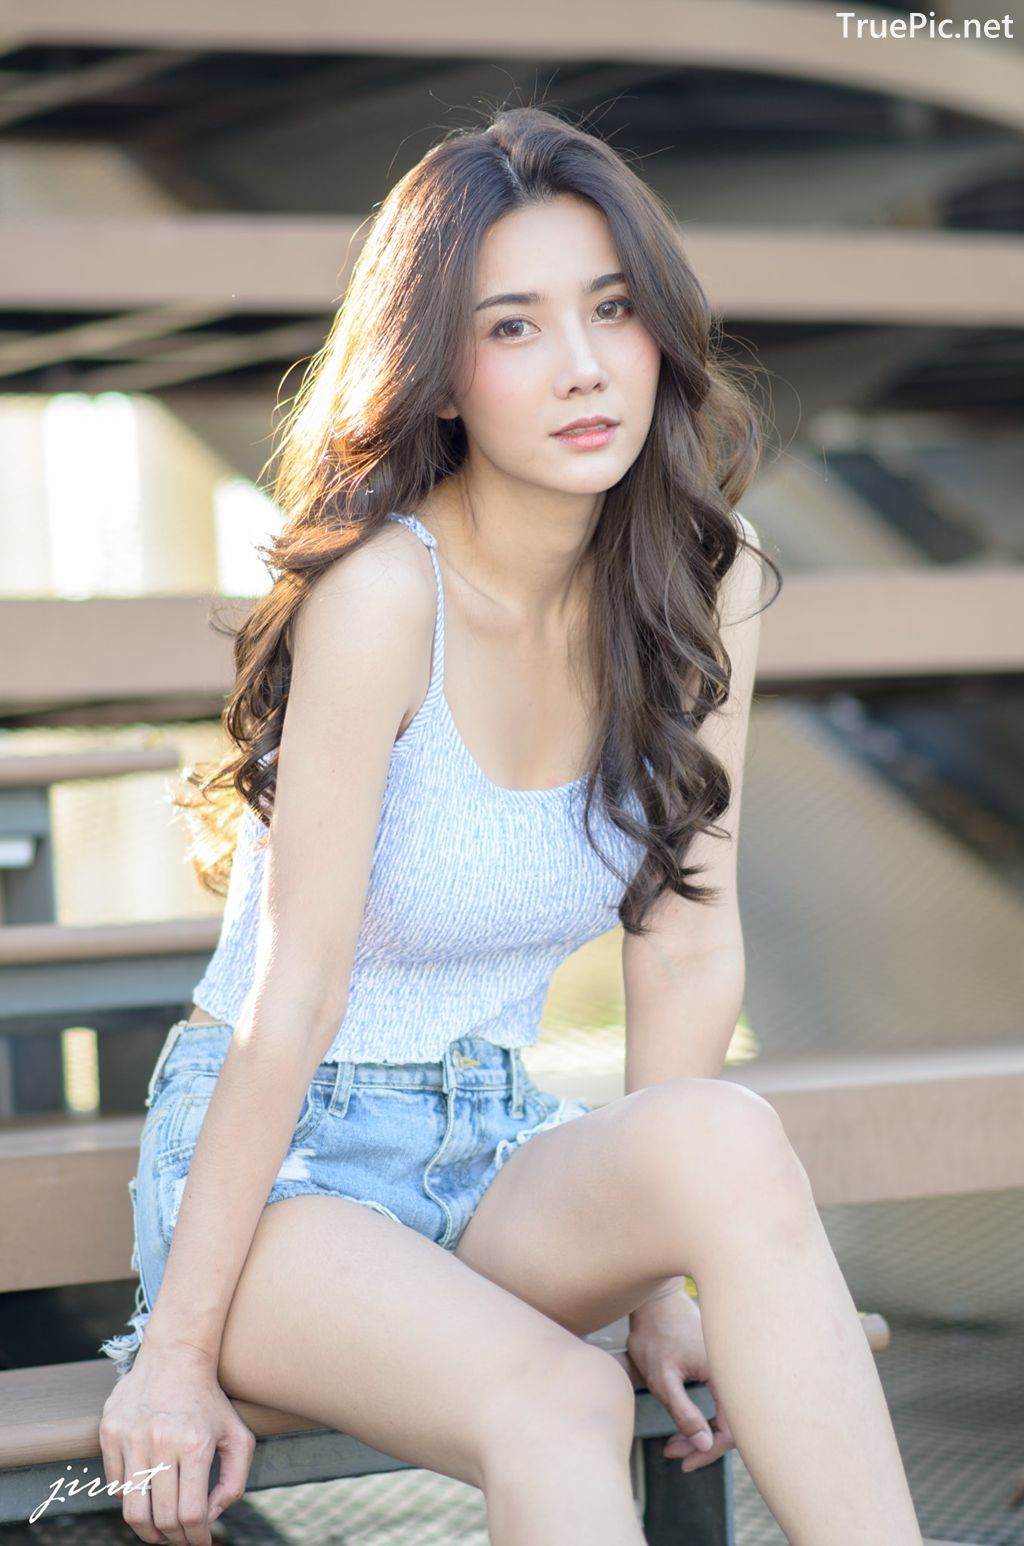 Image-Thailand-Model-Baiyok-Panachon-Cute-White-Crop-Top-and-Short-Jean-TruePic.net- Picture-9